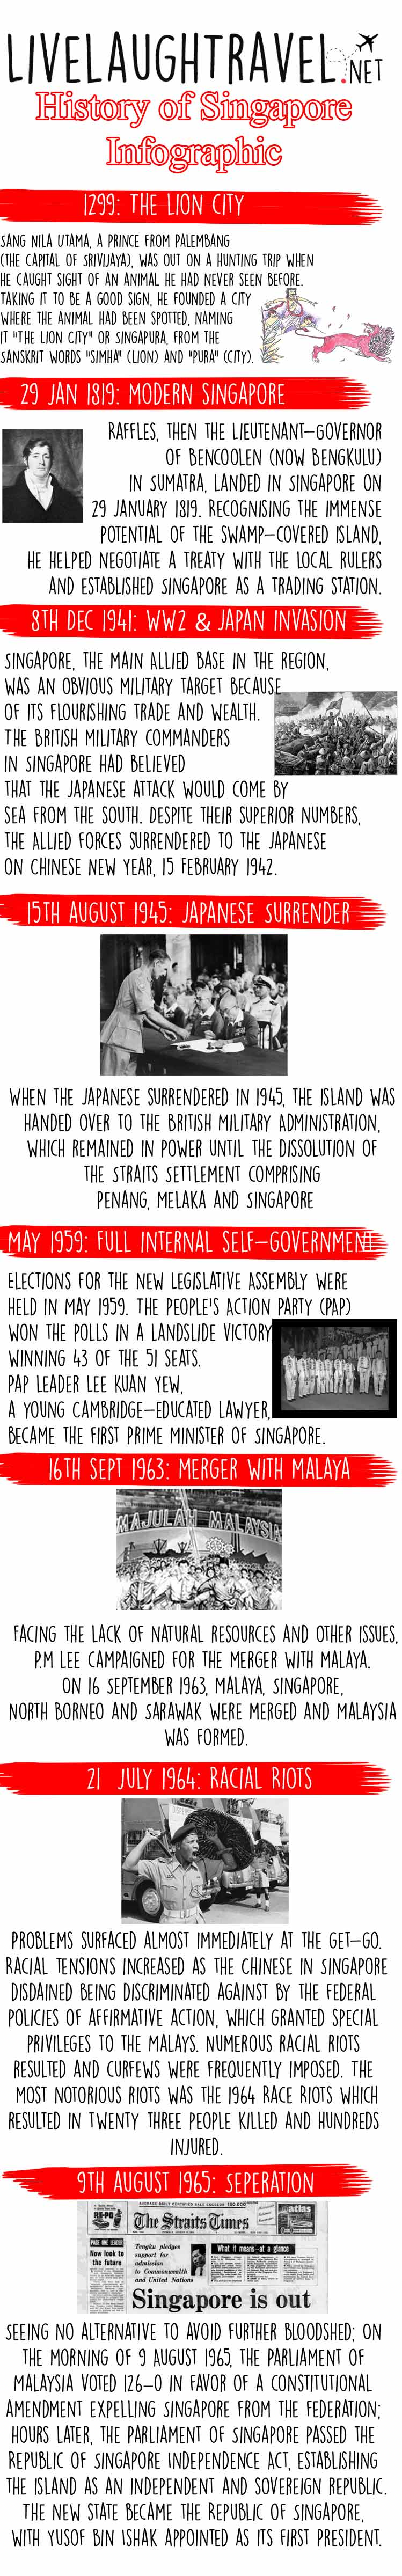 brief-singapore-history-timeline-infographic